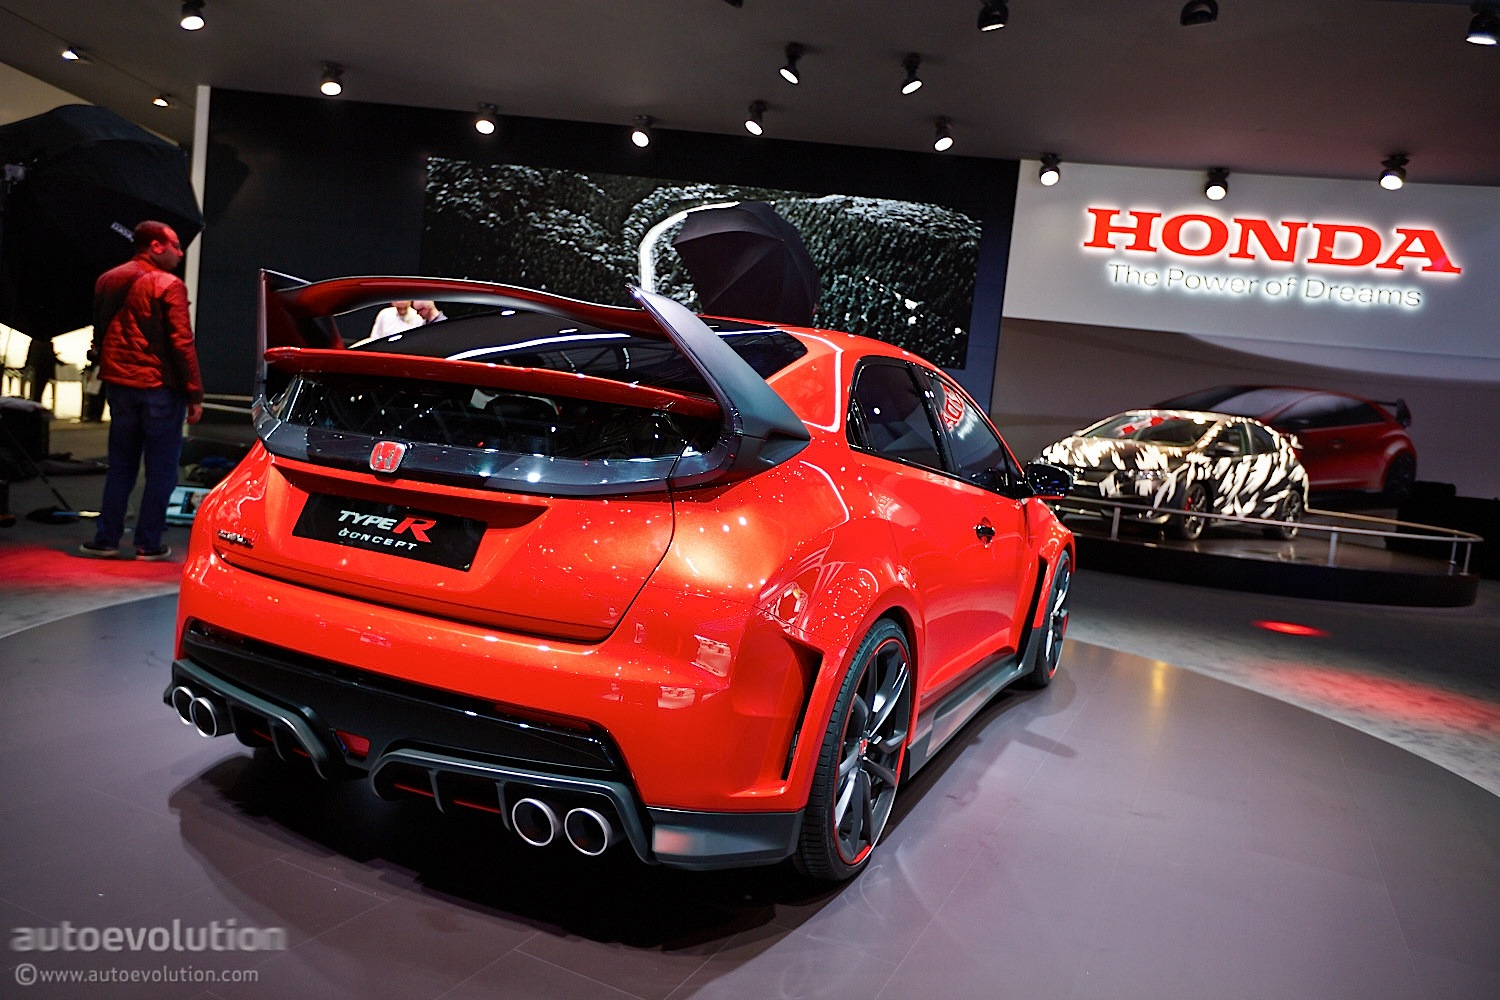 honda summons devilish new civic type r for the road. Black Bedroom Furniture Sets. Home Design Ideas